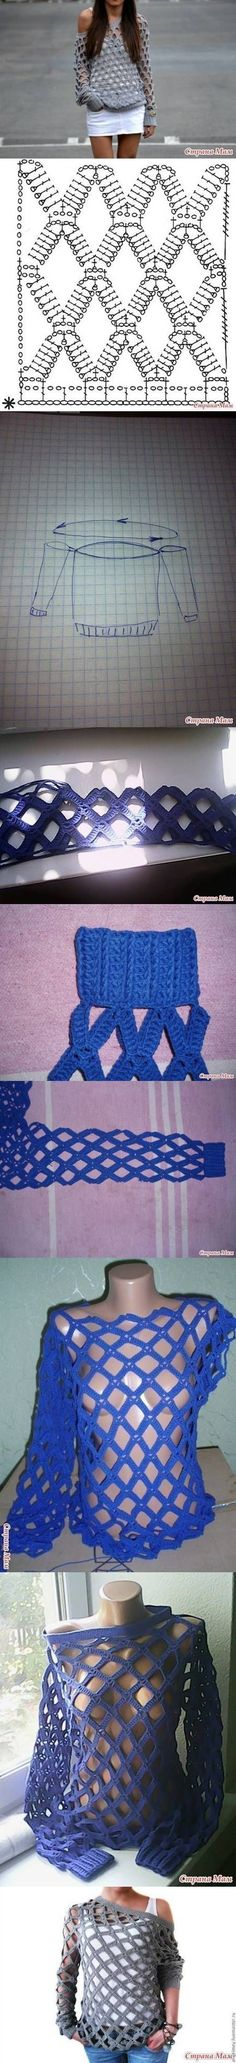 DIY Crochet Blouse DIY Projects / UsefulDIY.com